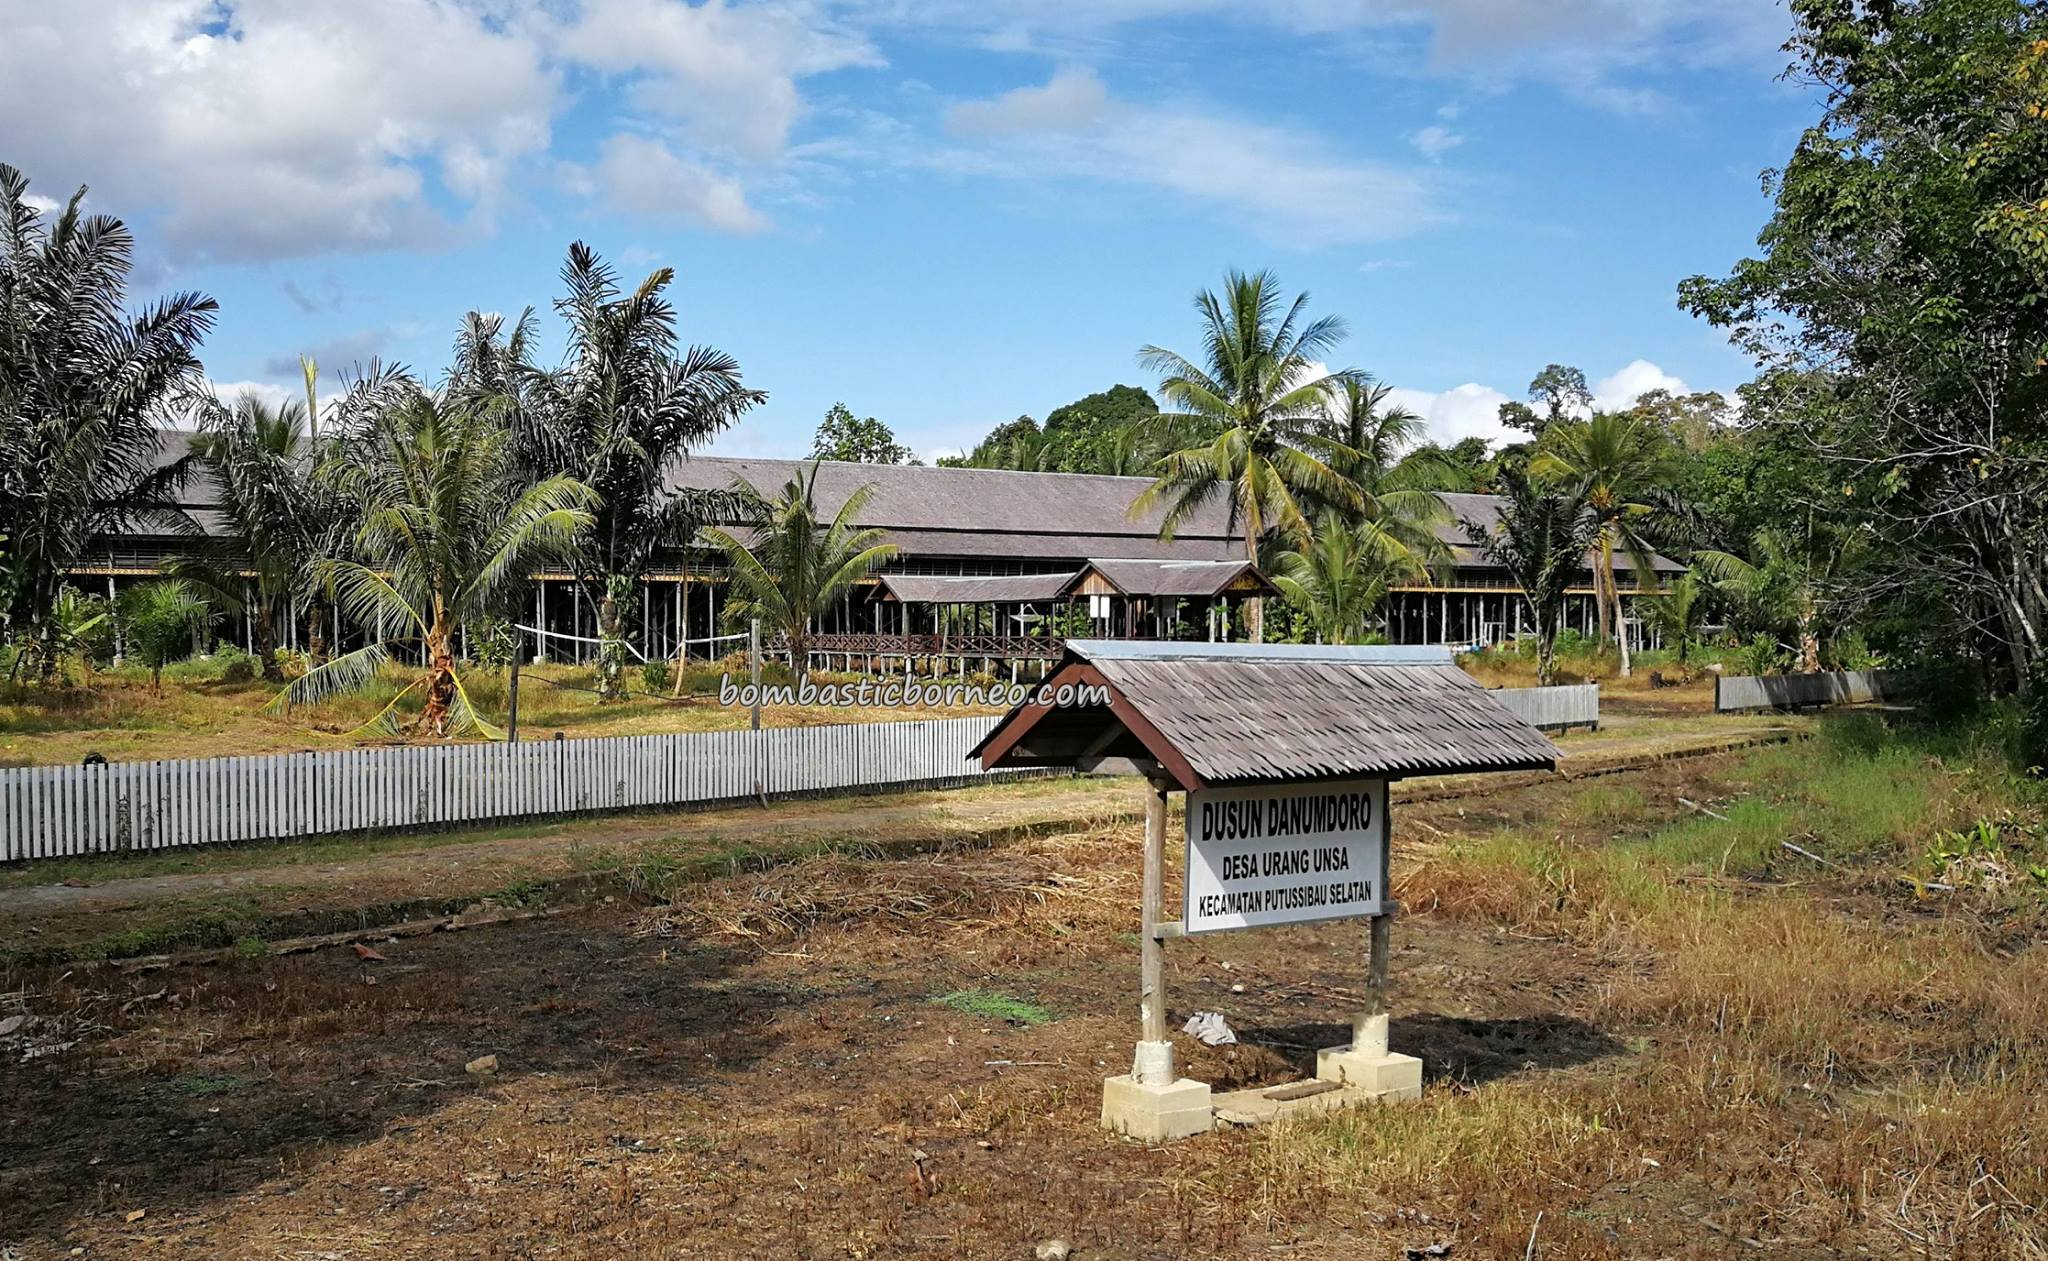 Rumah Betang Lunsa Hilir, traditional, village, Indonesia, West Kalimantan, Kapuas Hulu, Desa Urang Unsa, Dusun Danumdoro, native, tribe, Obyek wisata, Tourism, travel guide, crossborder, 婆罗洲, 原住民长屋